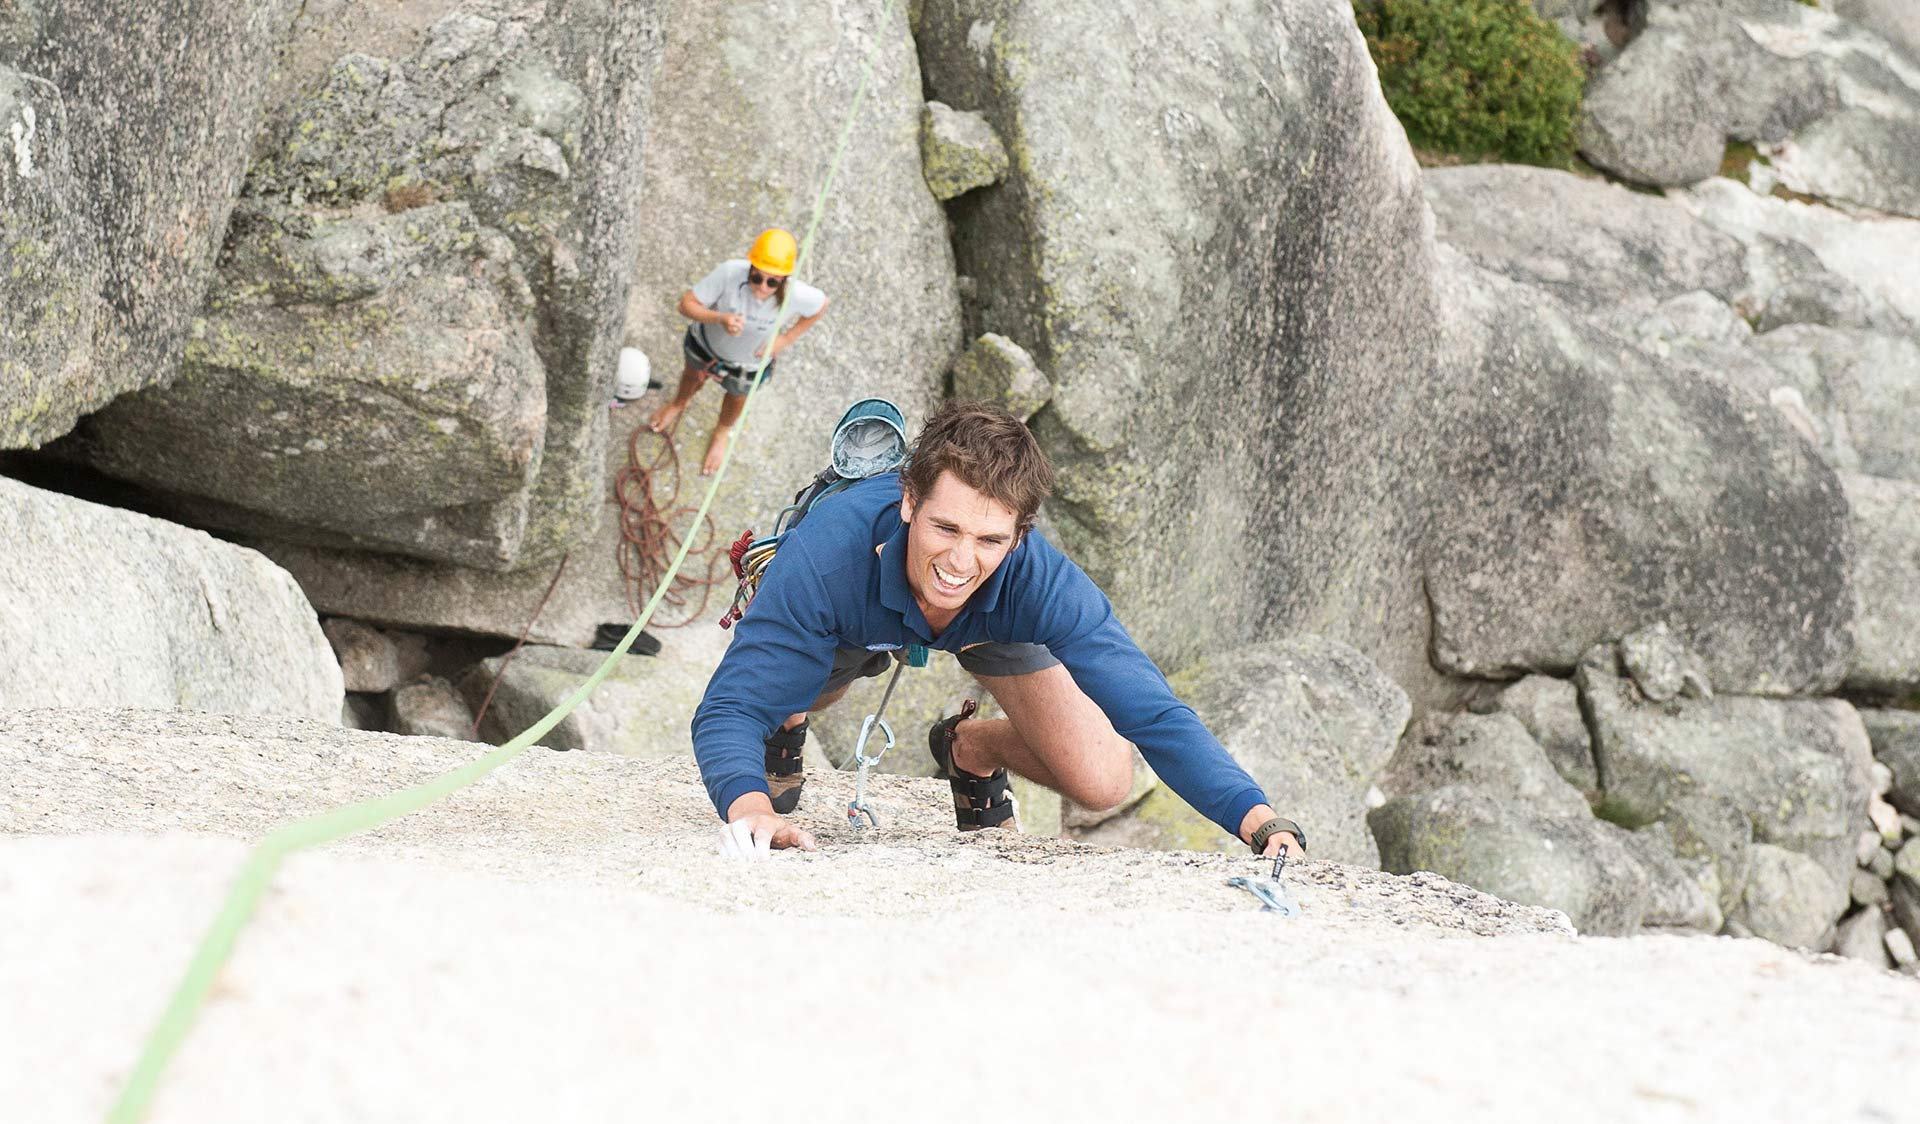 A young man climbs a near featureless wall at Mt Buffalo while his climbing partner watches on.